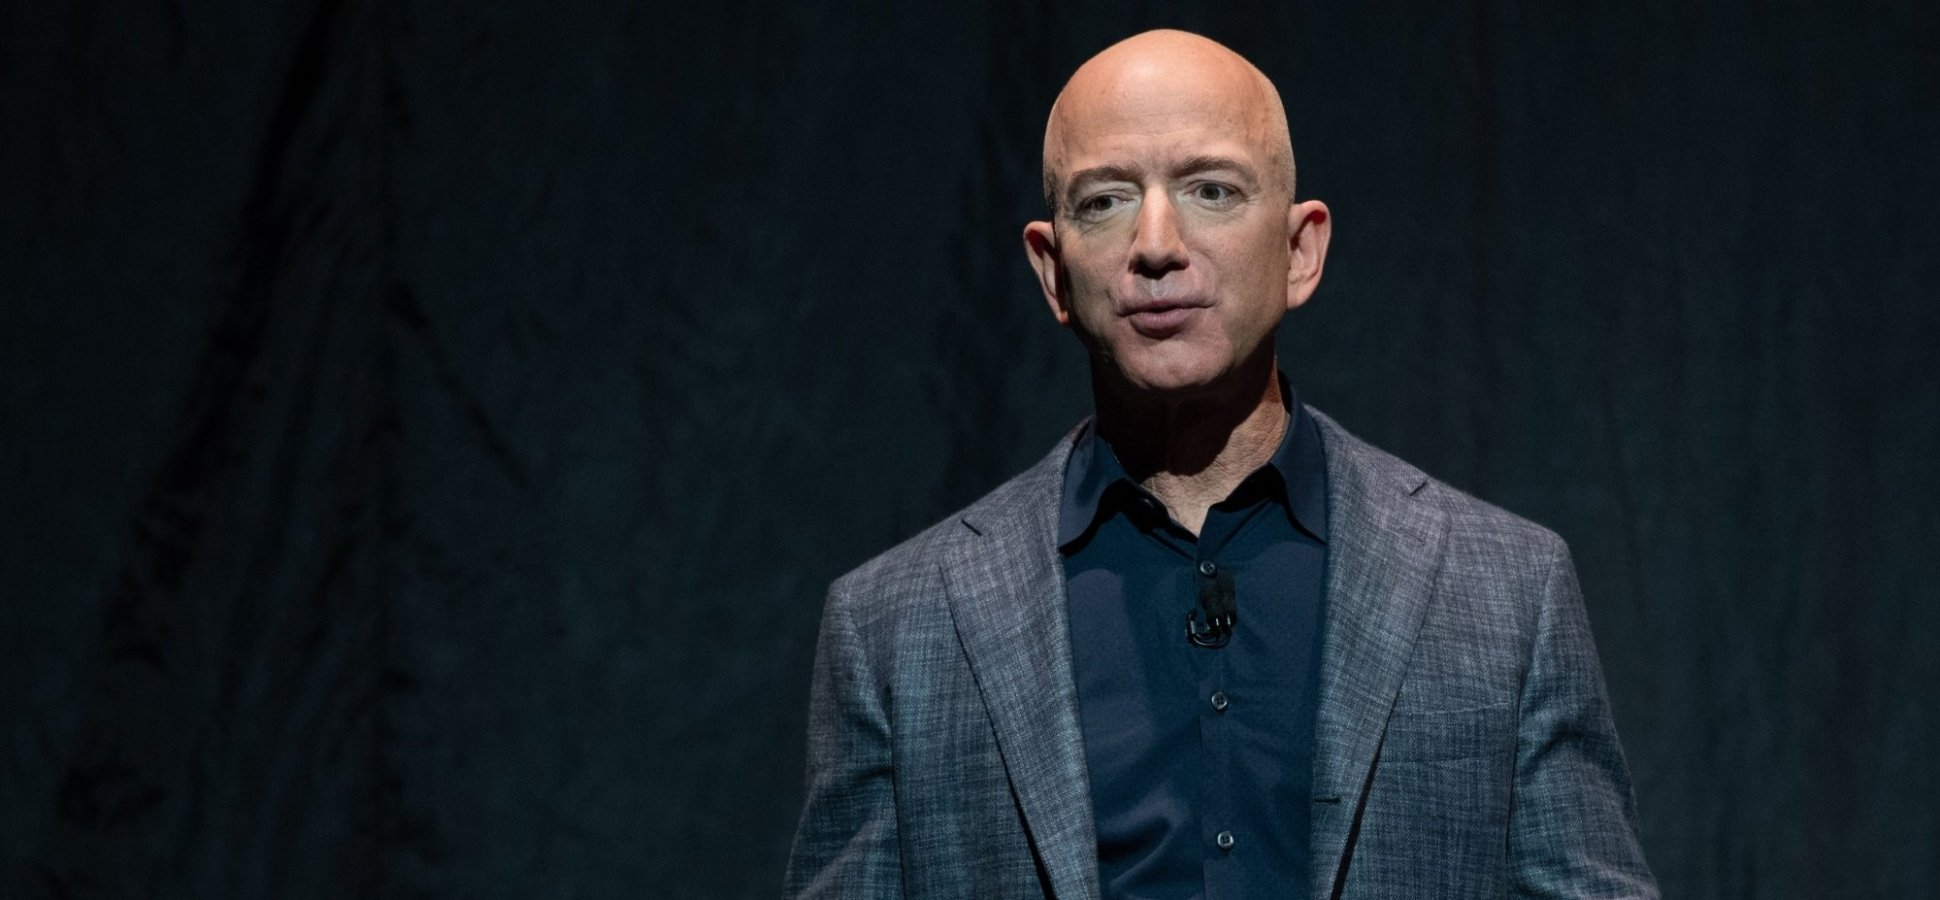 Jeff Bezos Requires Amazon's Leaders to Perform This Powerful Ritual Before Launching Anything